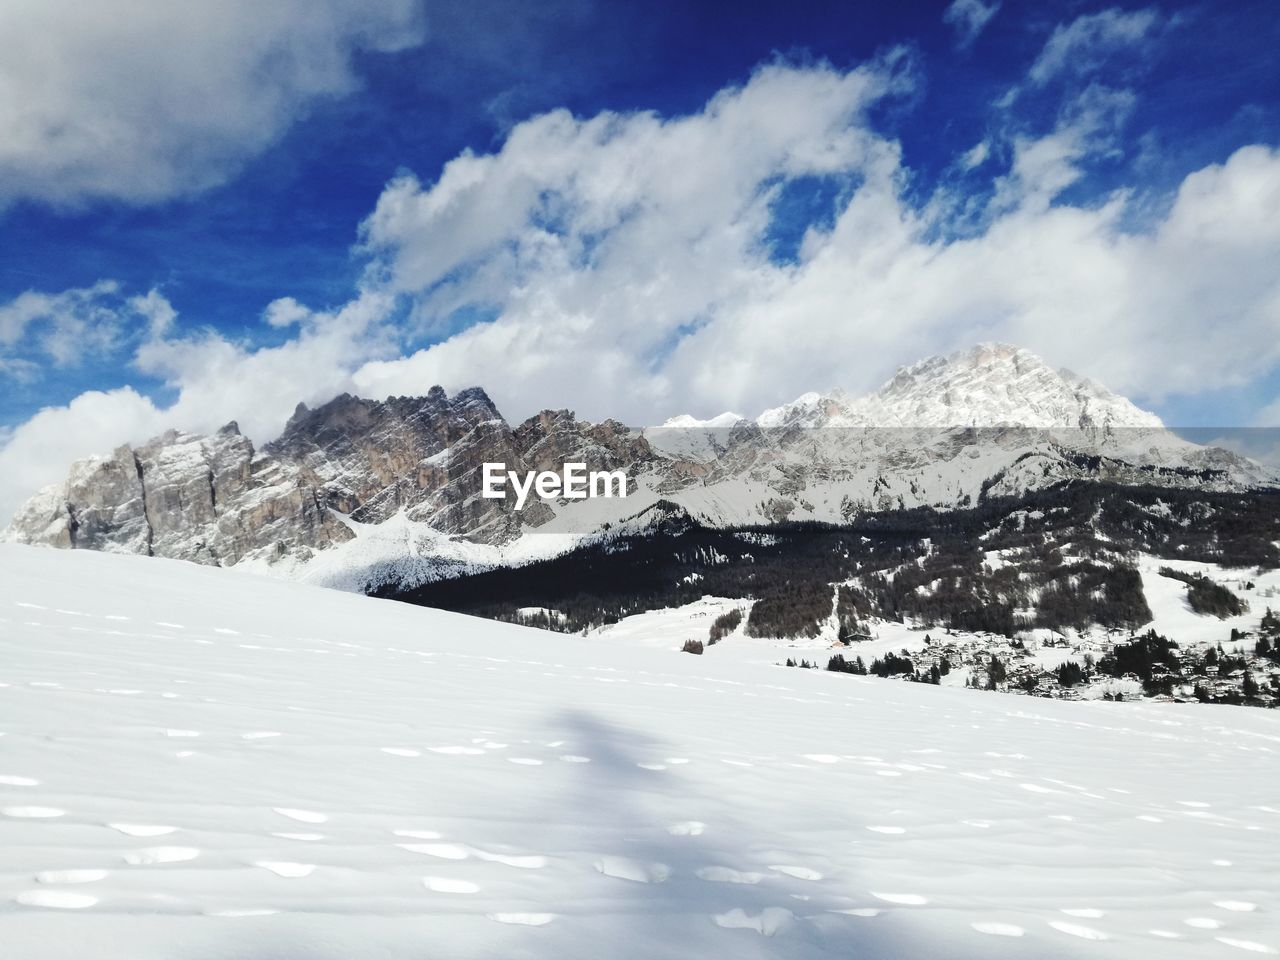 snow, winter, cold temperature, mountain, nature, white color, scenics, beauty in nature, tranquil scene, sky, tranquility, cloud - sky, weather, landscape, snowcapped mountain, outdoors, day, no people, mountain range